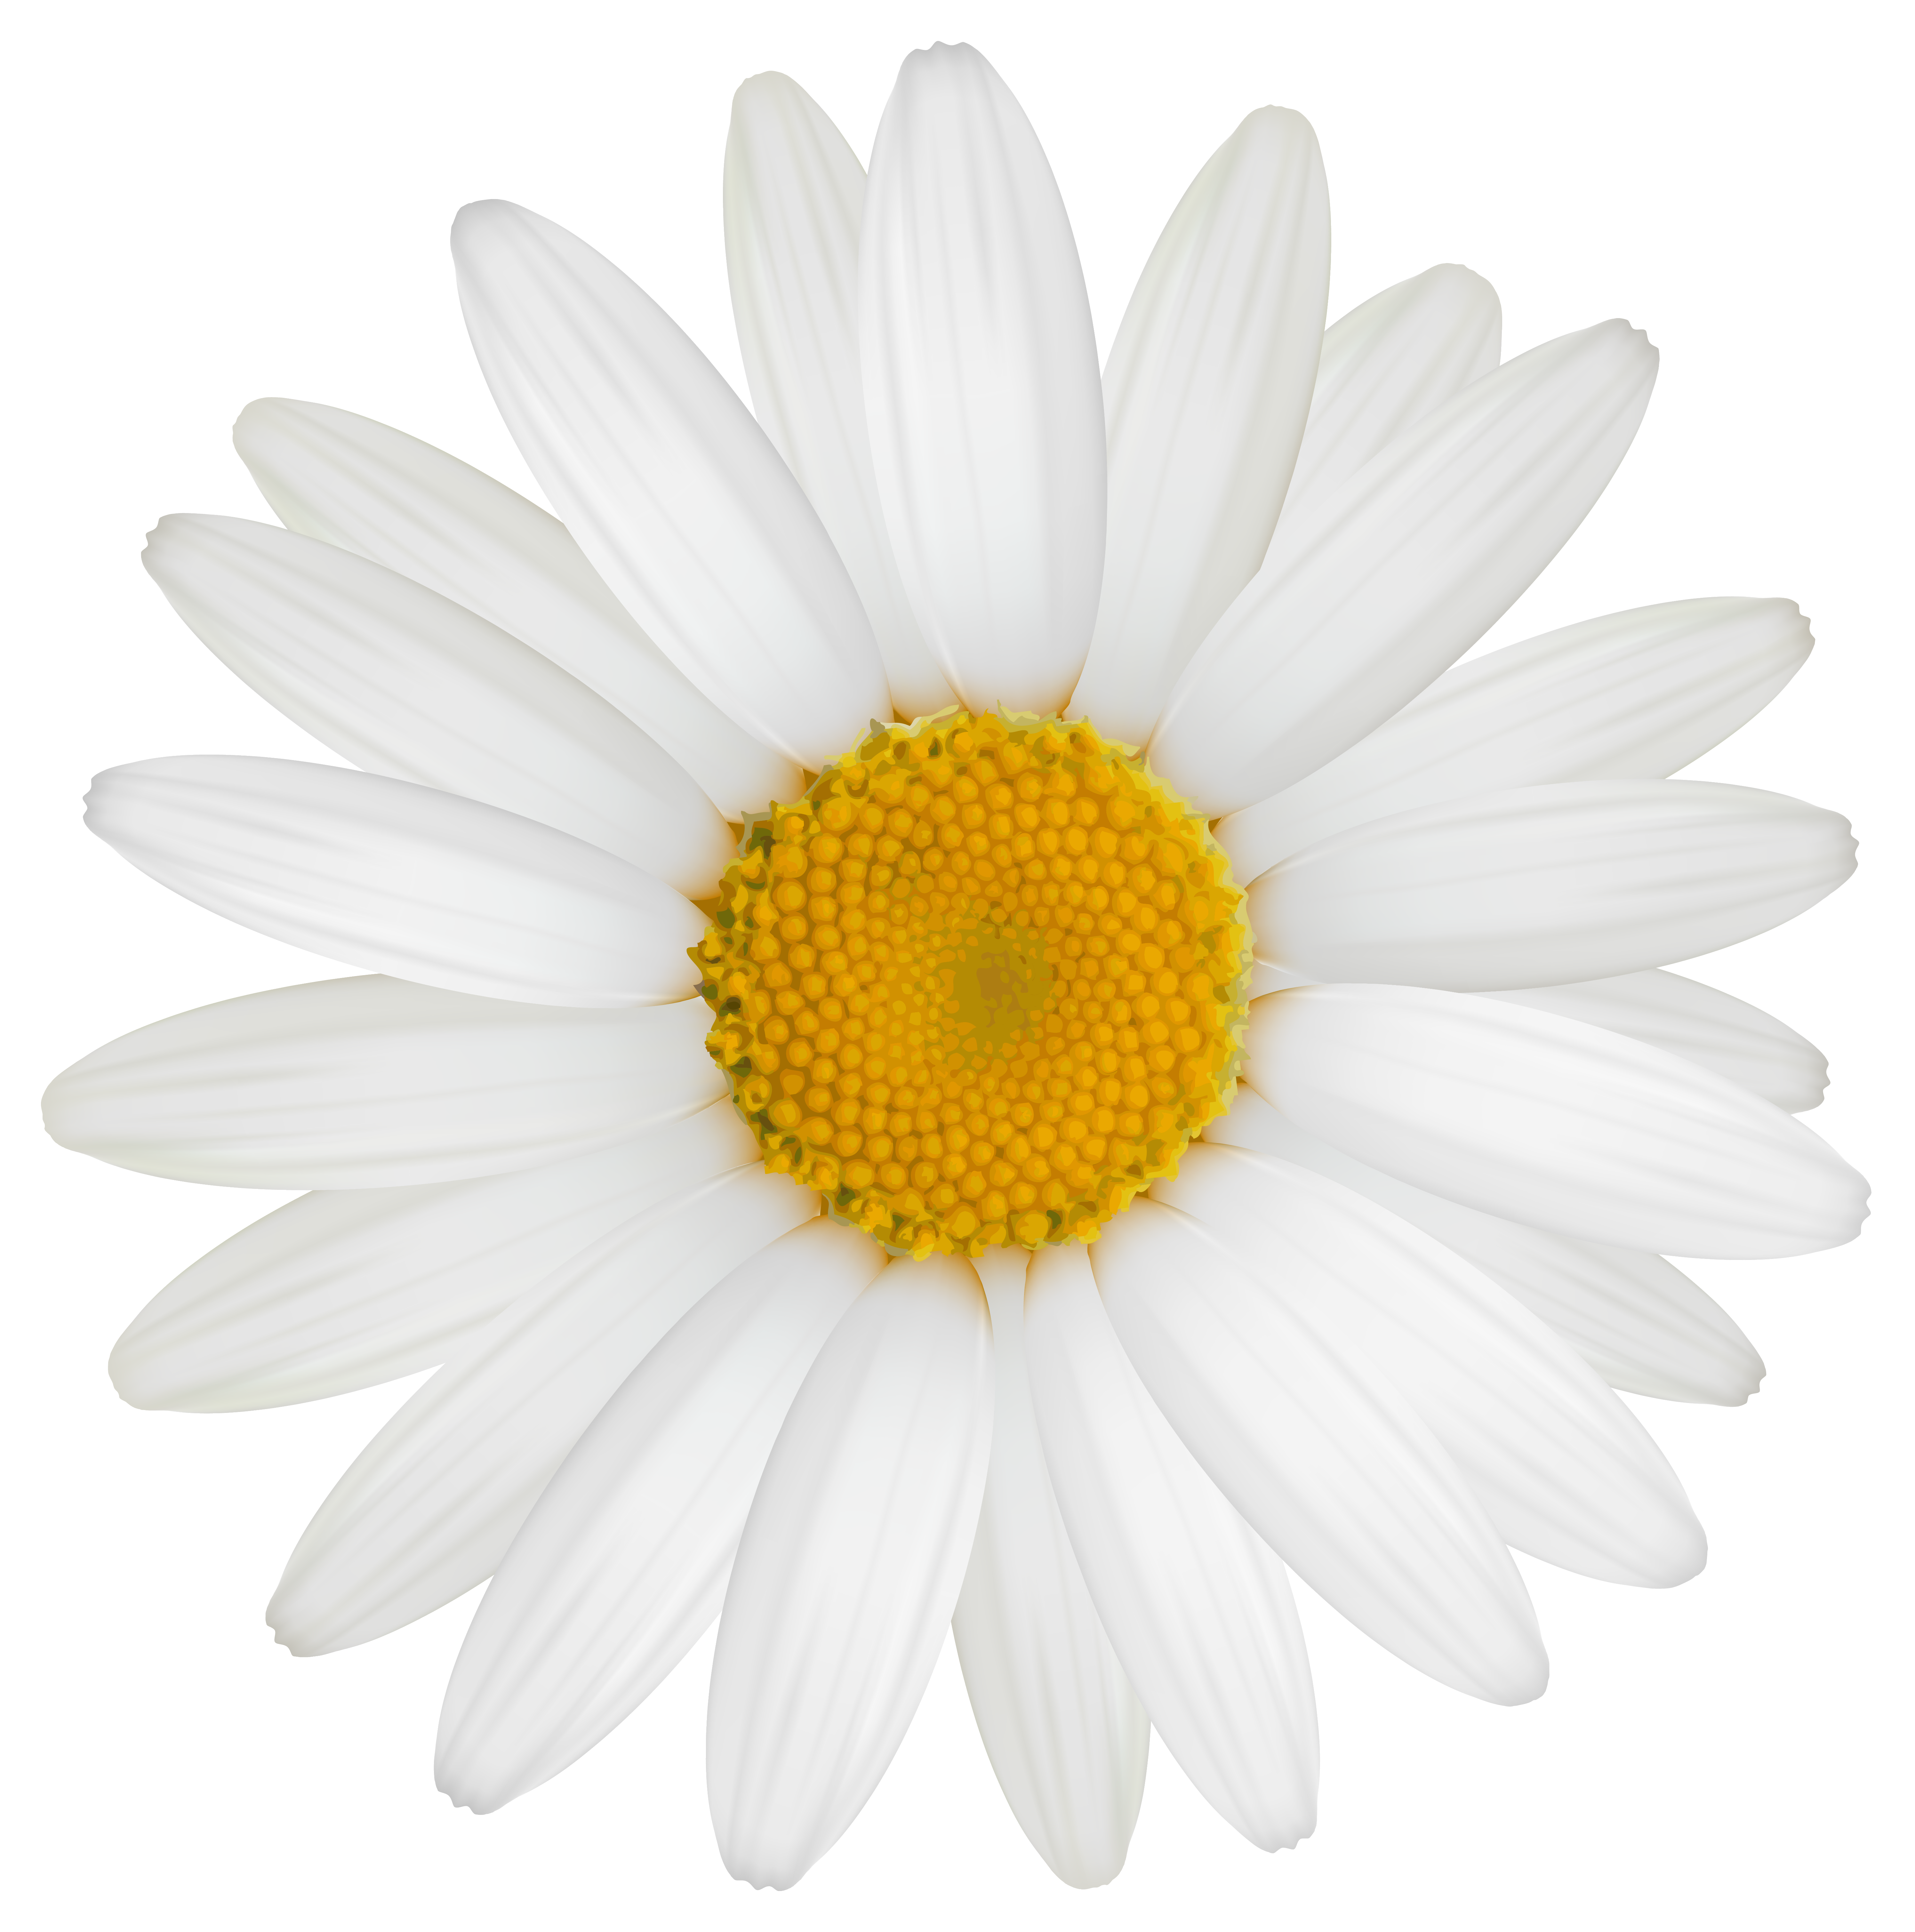 Daisy clipart transparent background. Png image gallery yopriceville